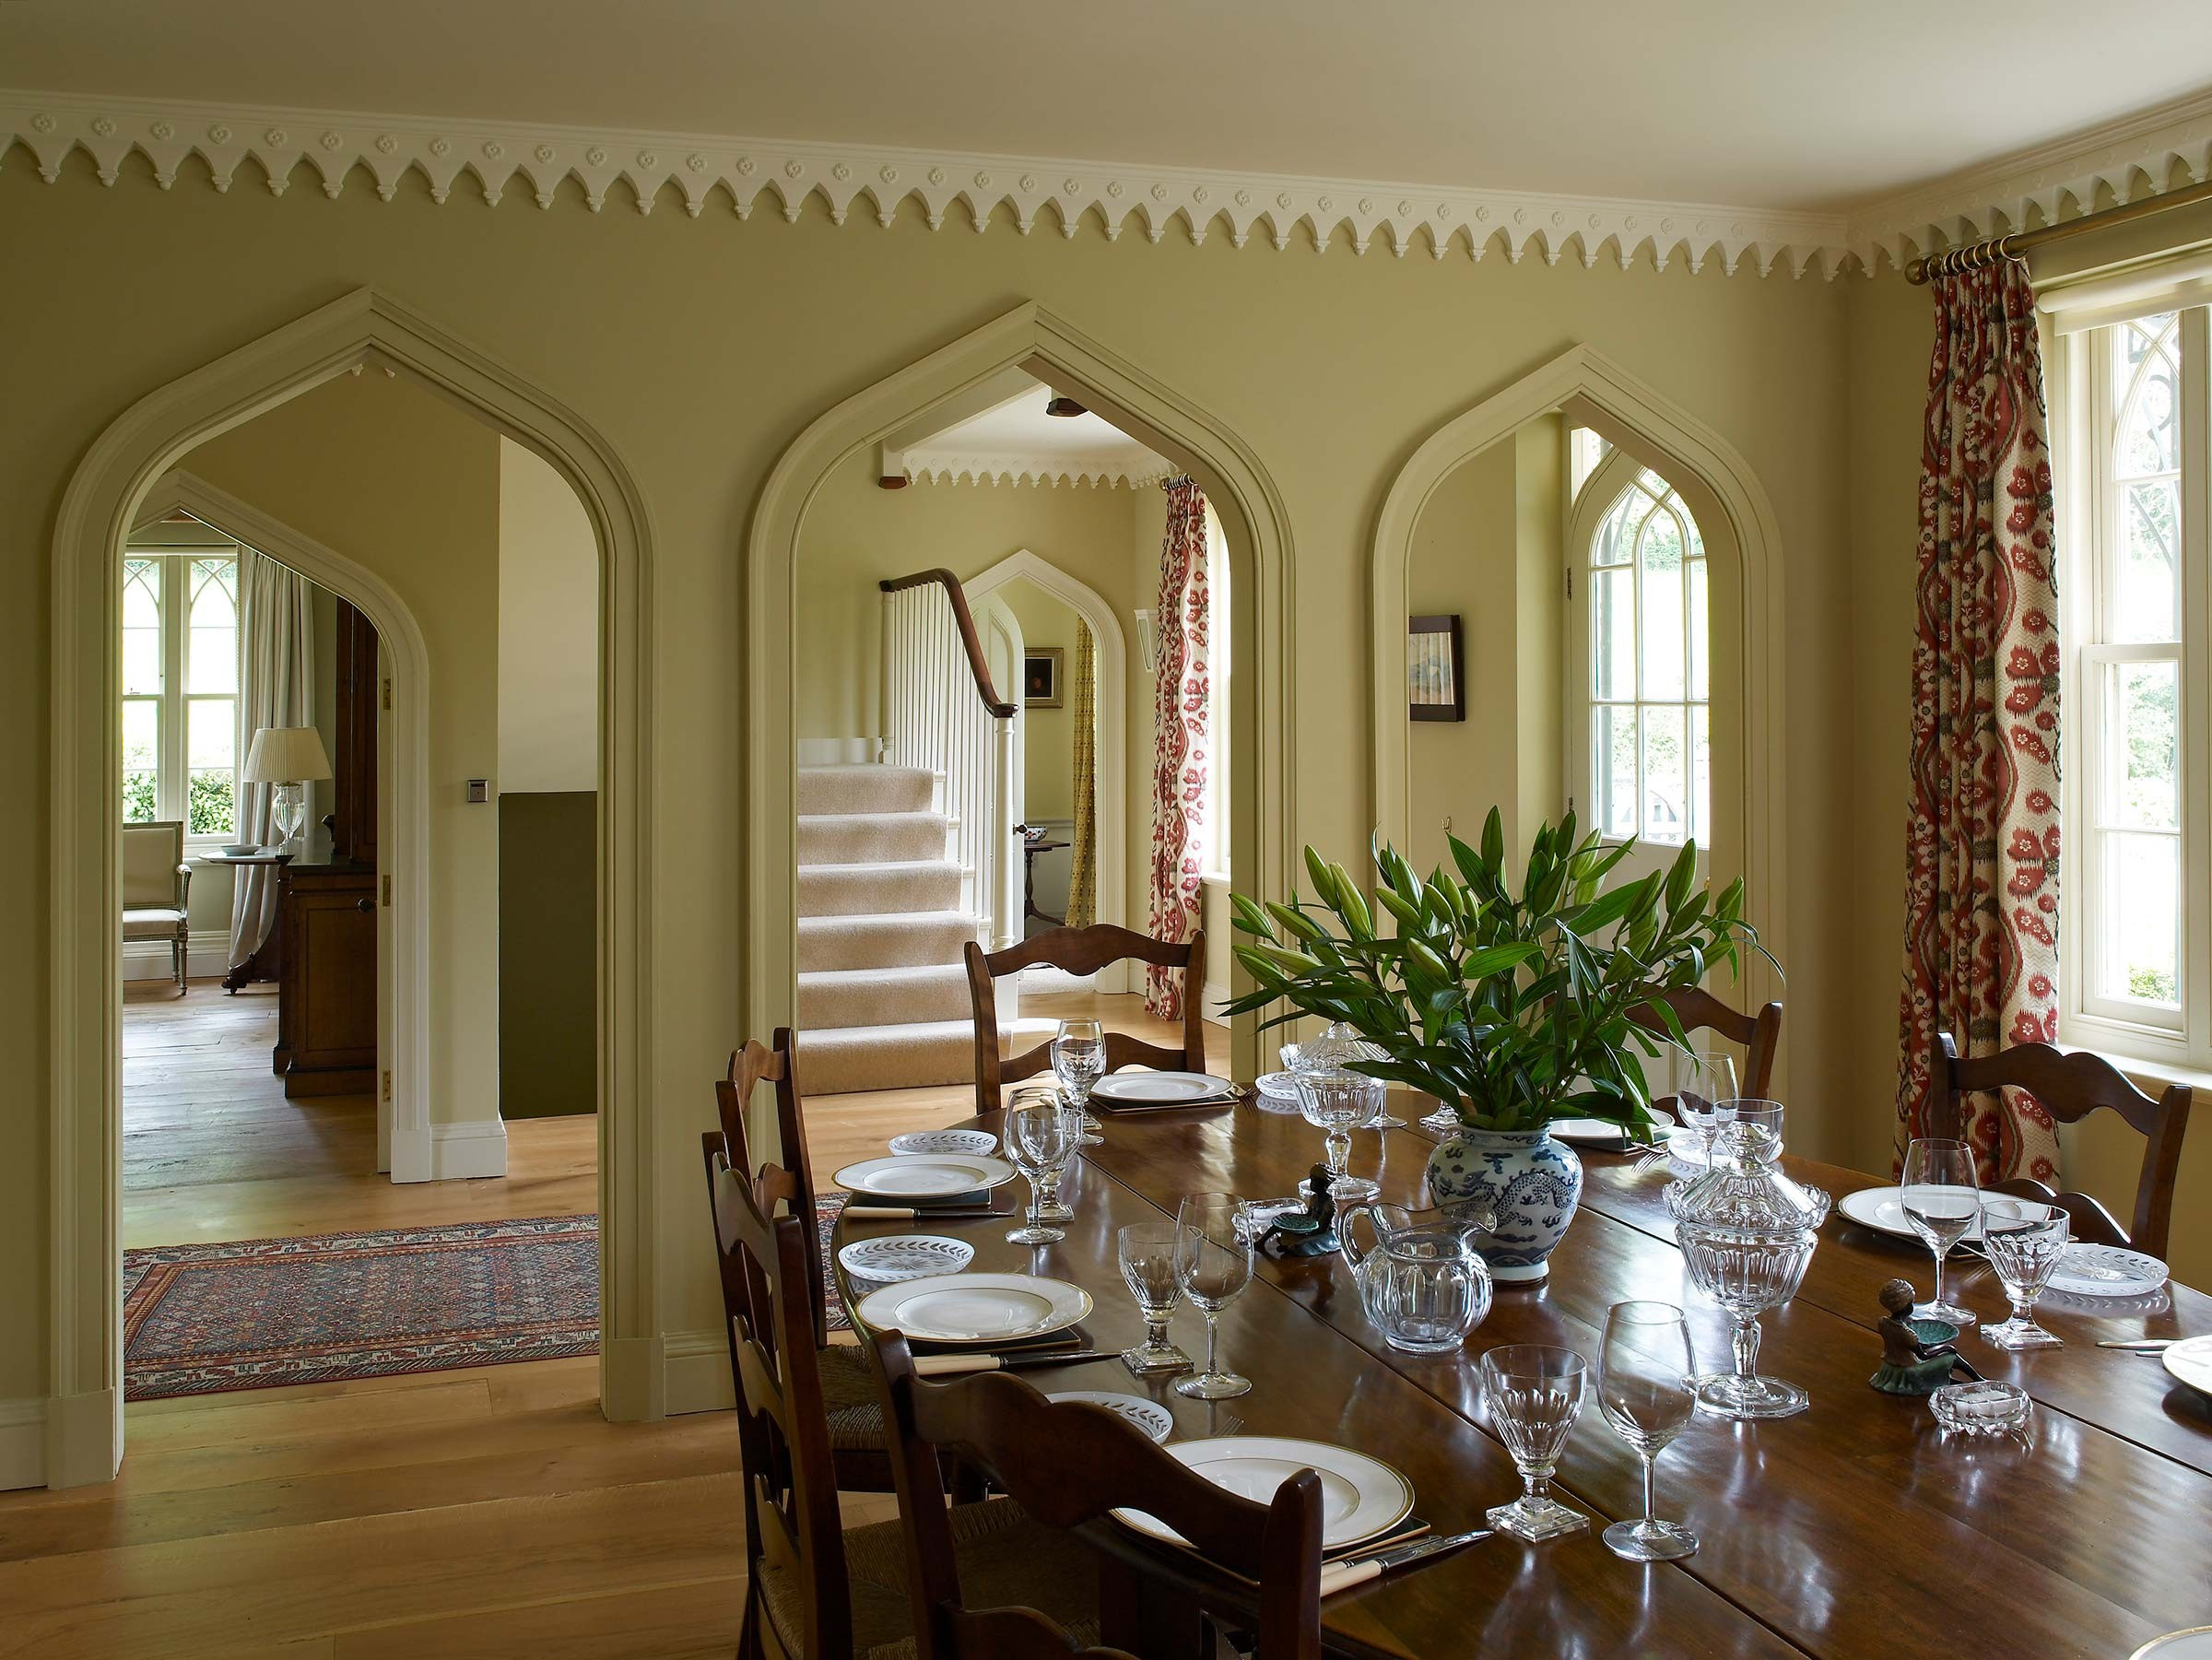 New Cottage Orné house interior, Hampshire